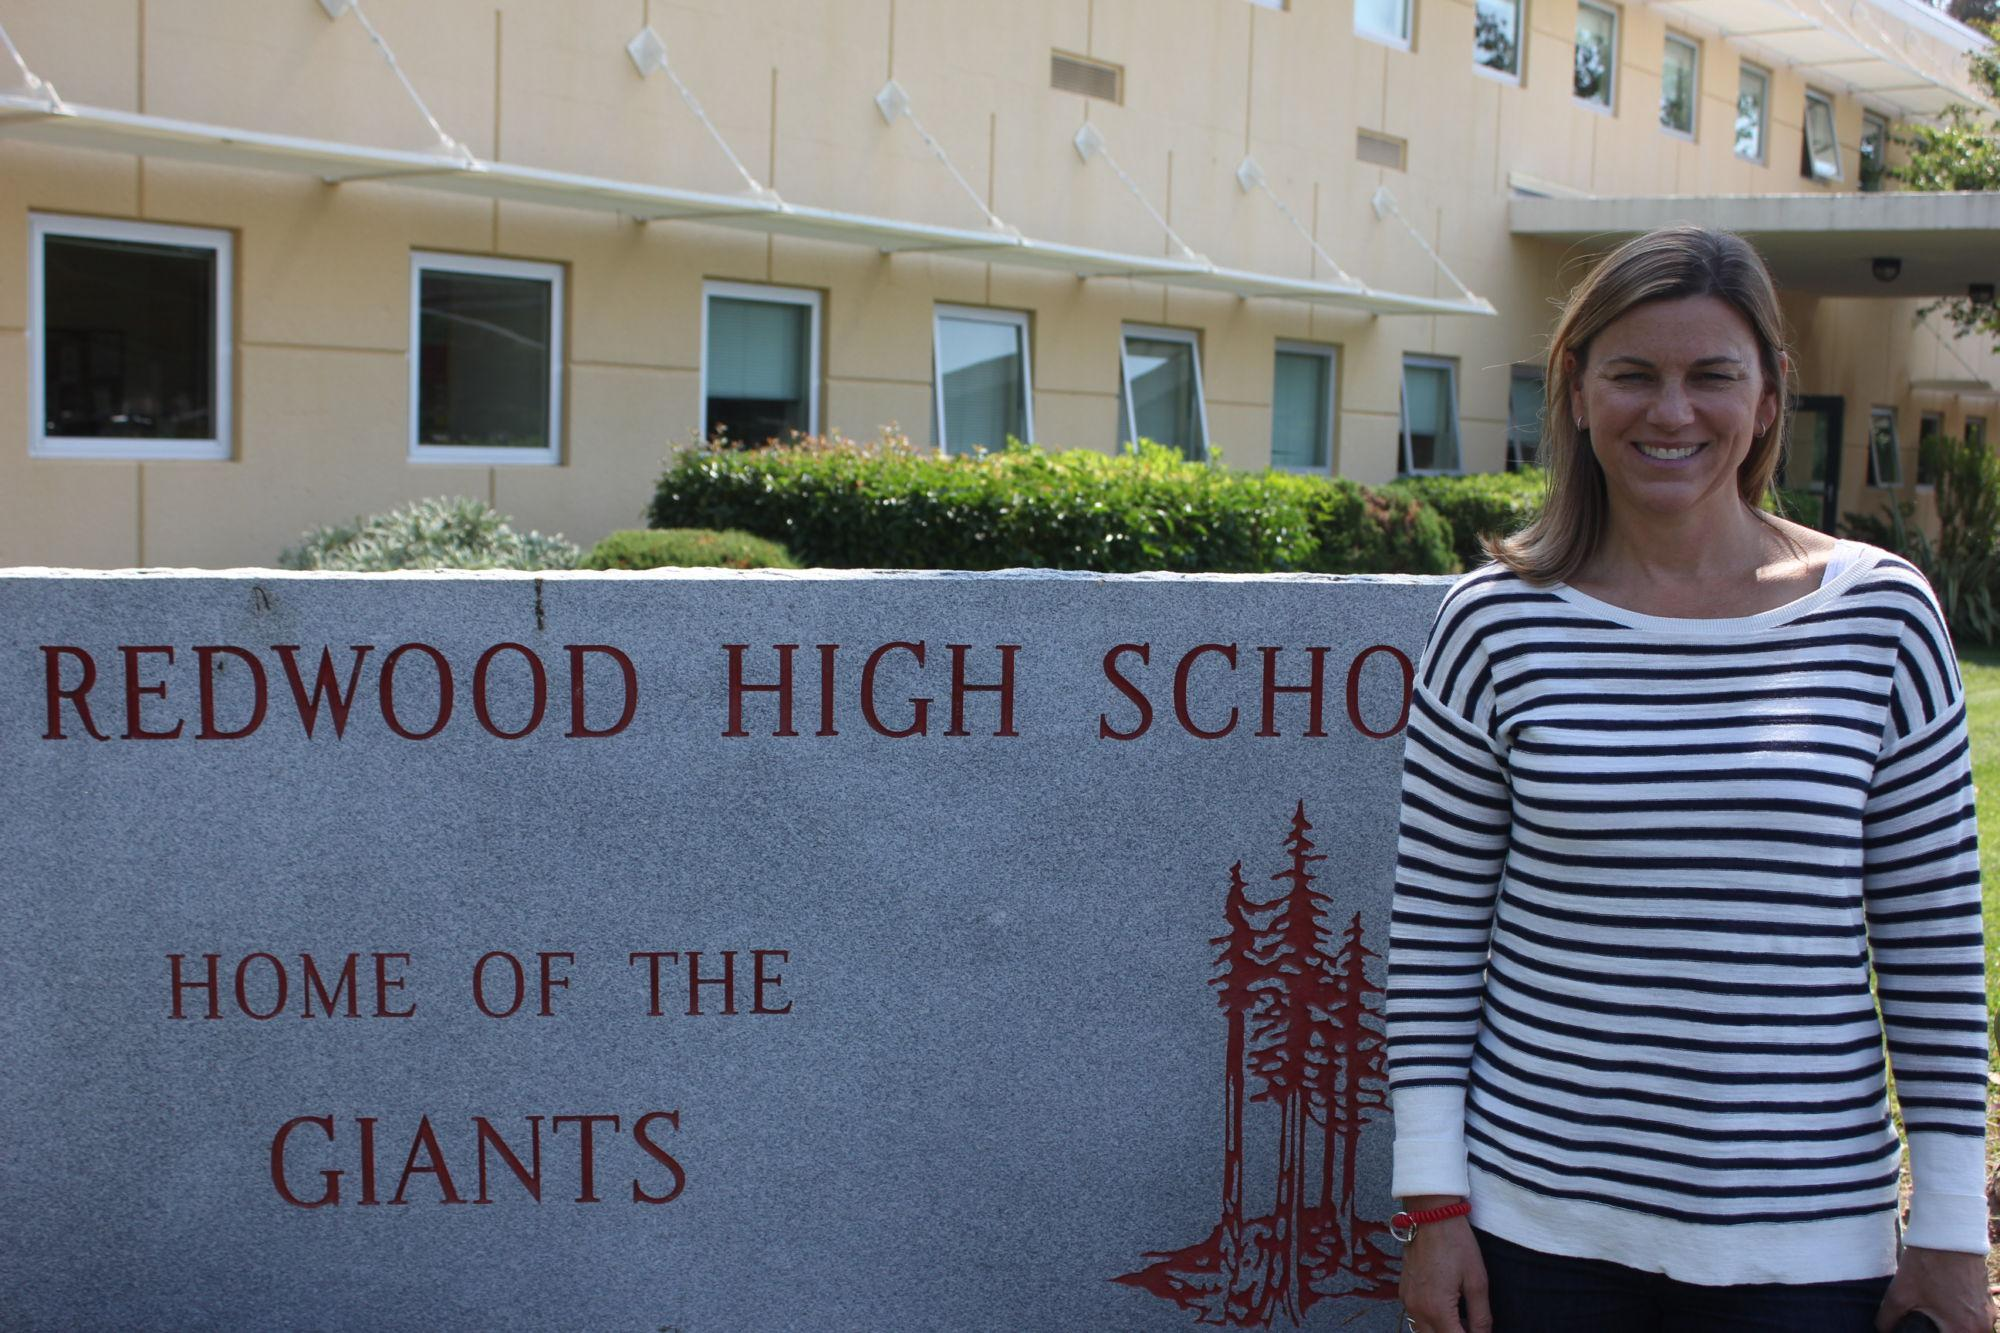 Former teacher returns to Redwood as Assistant Principal after two decades